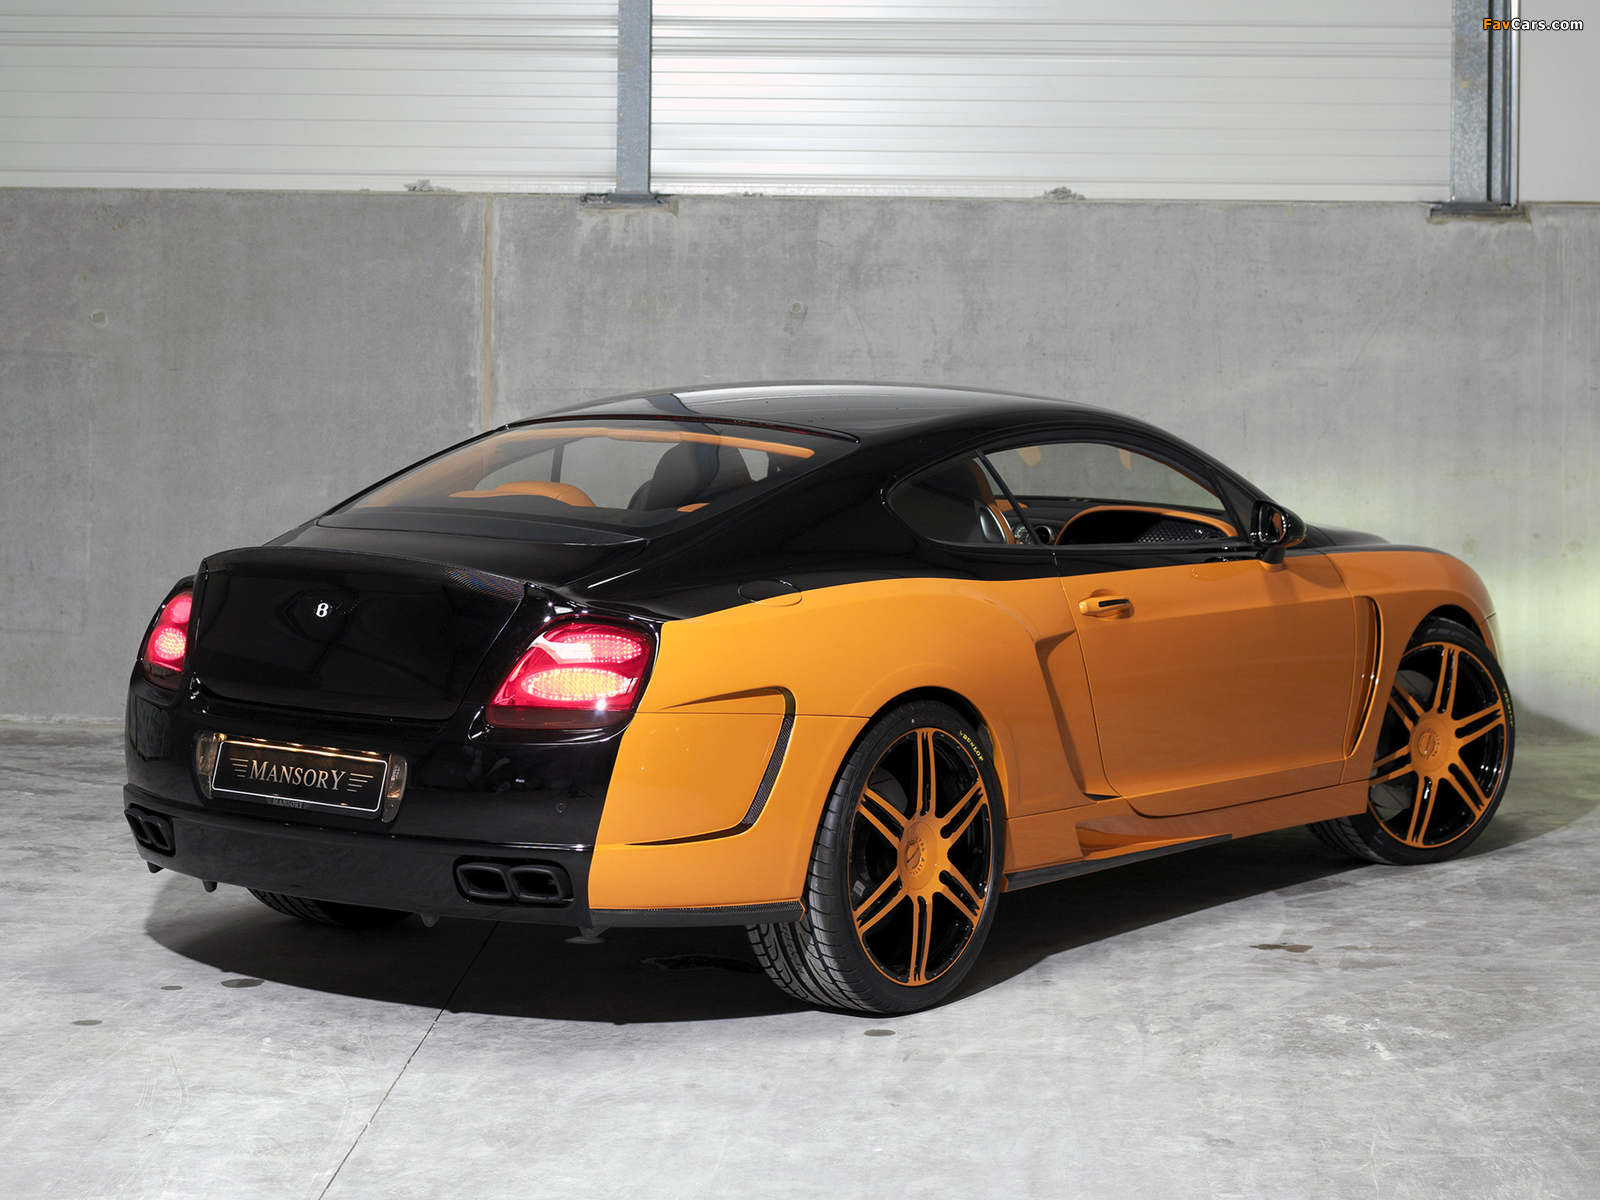 Mansory Bentley Continental GT wallpapers (1600 x 1200)